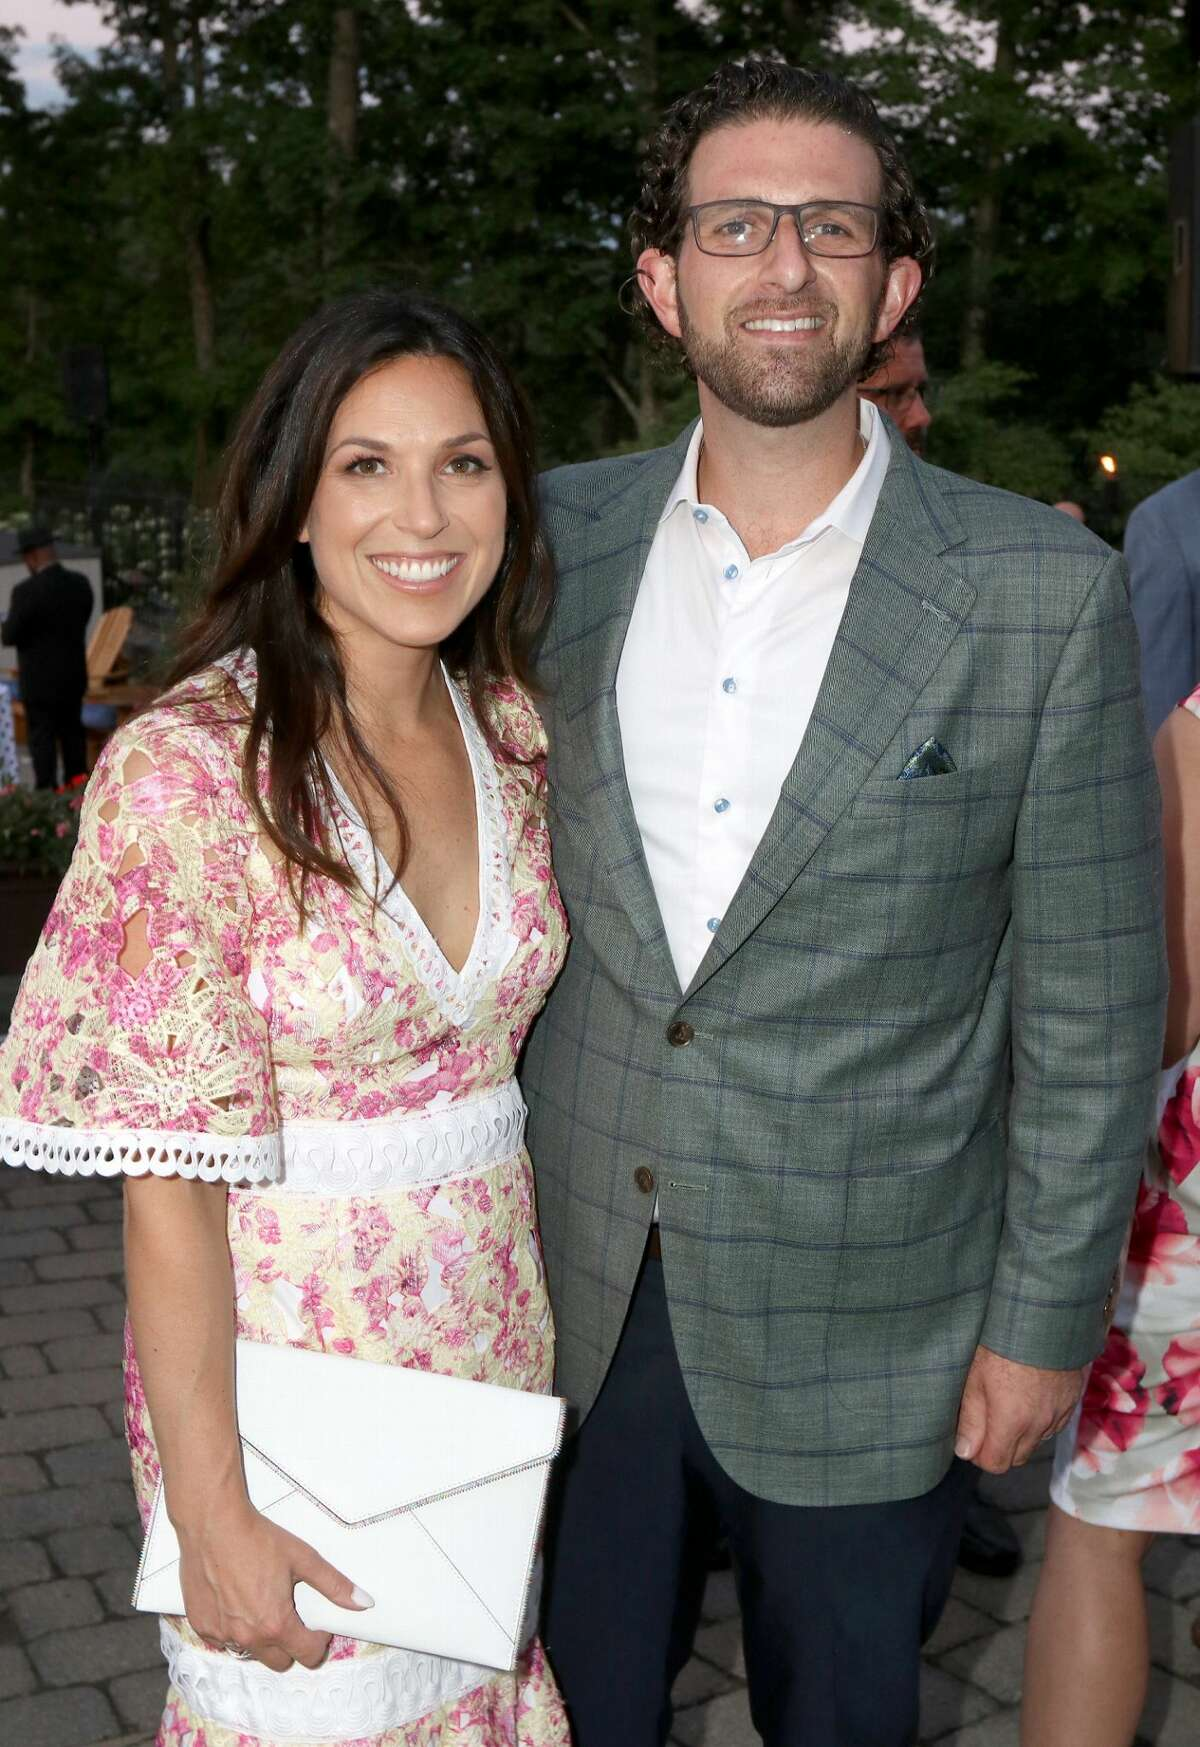 Were you Seen at the Albany Medical Center Foundation's Light Up The Night Gala at Saratoga National Golf Club in Saratoga Springs on Friday, July 12, 2019?